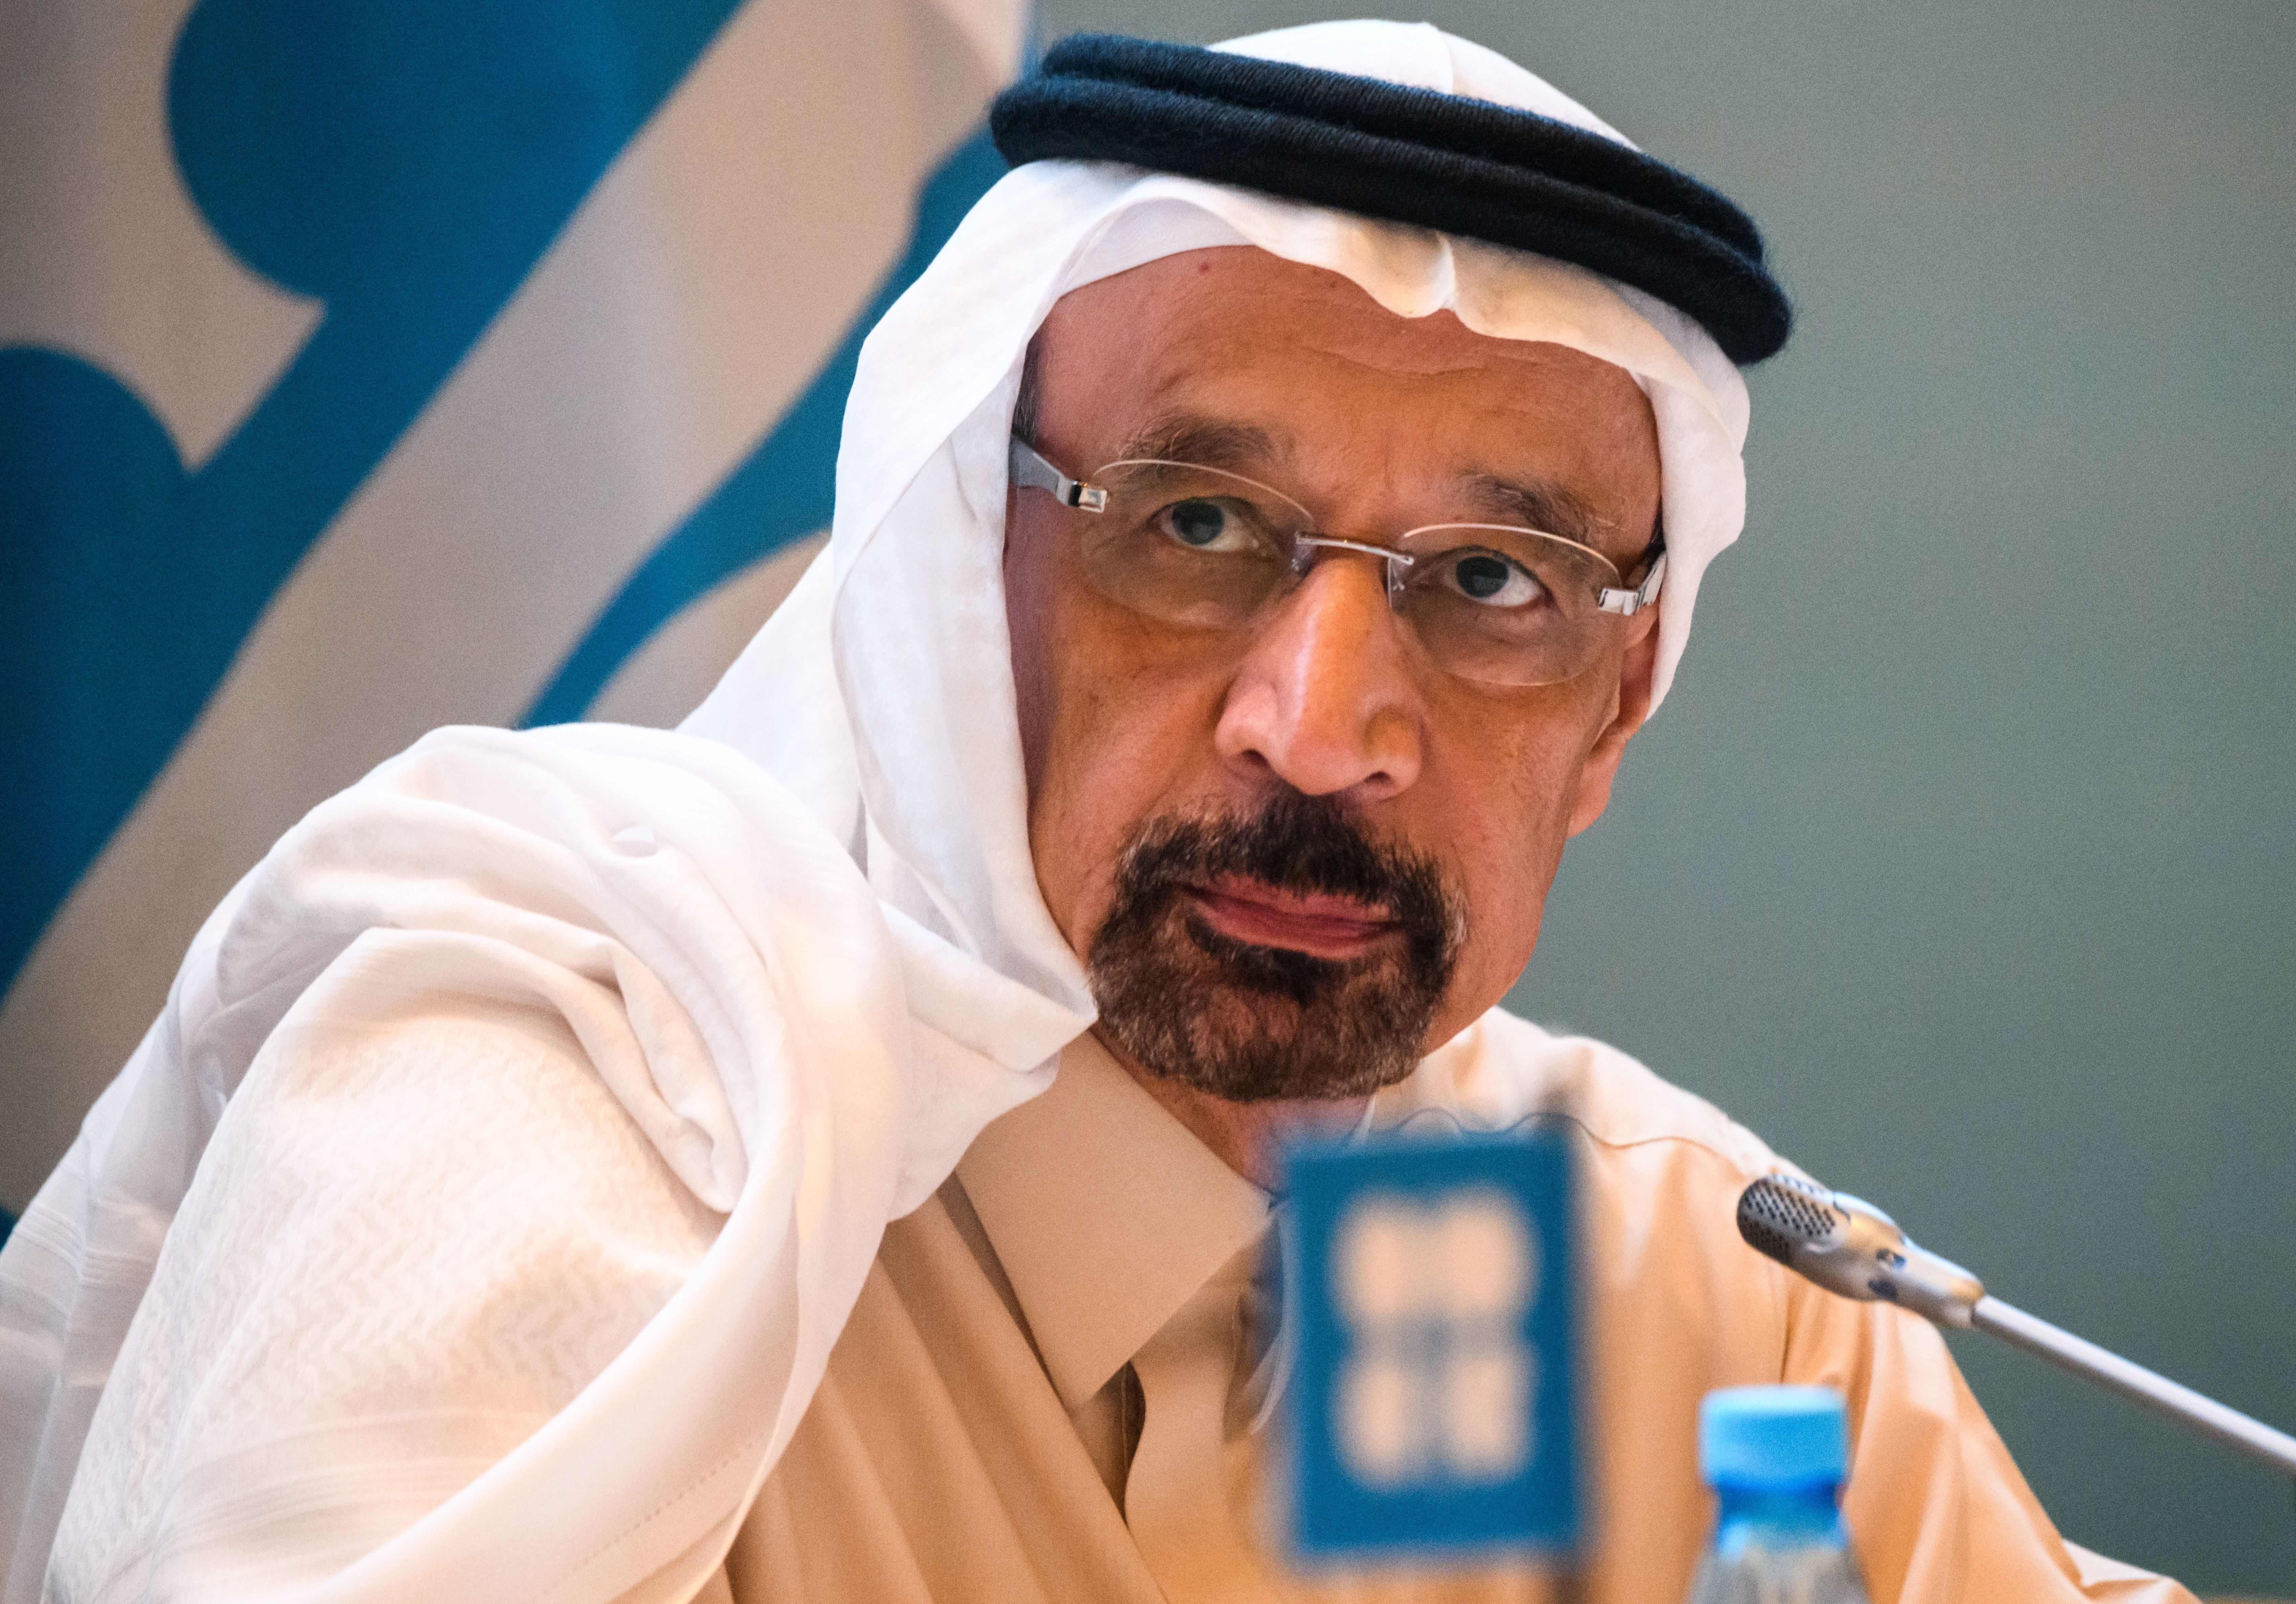 Oil prices jump as Saudi energy minister reports drone 'terrorism' against pipeline infrastructure